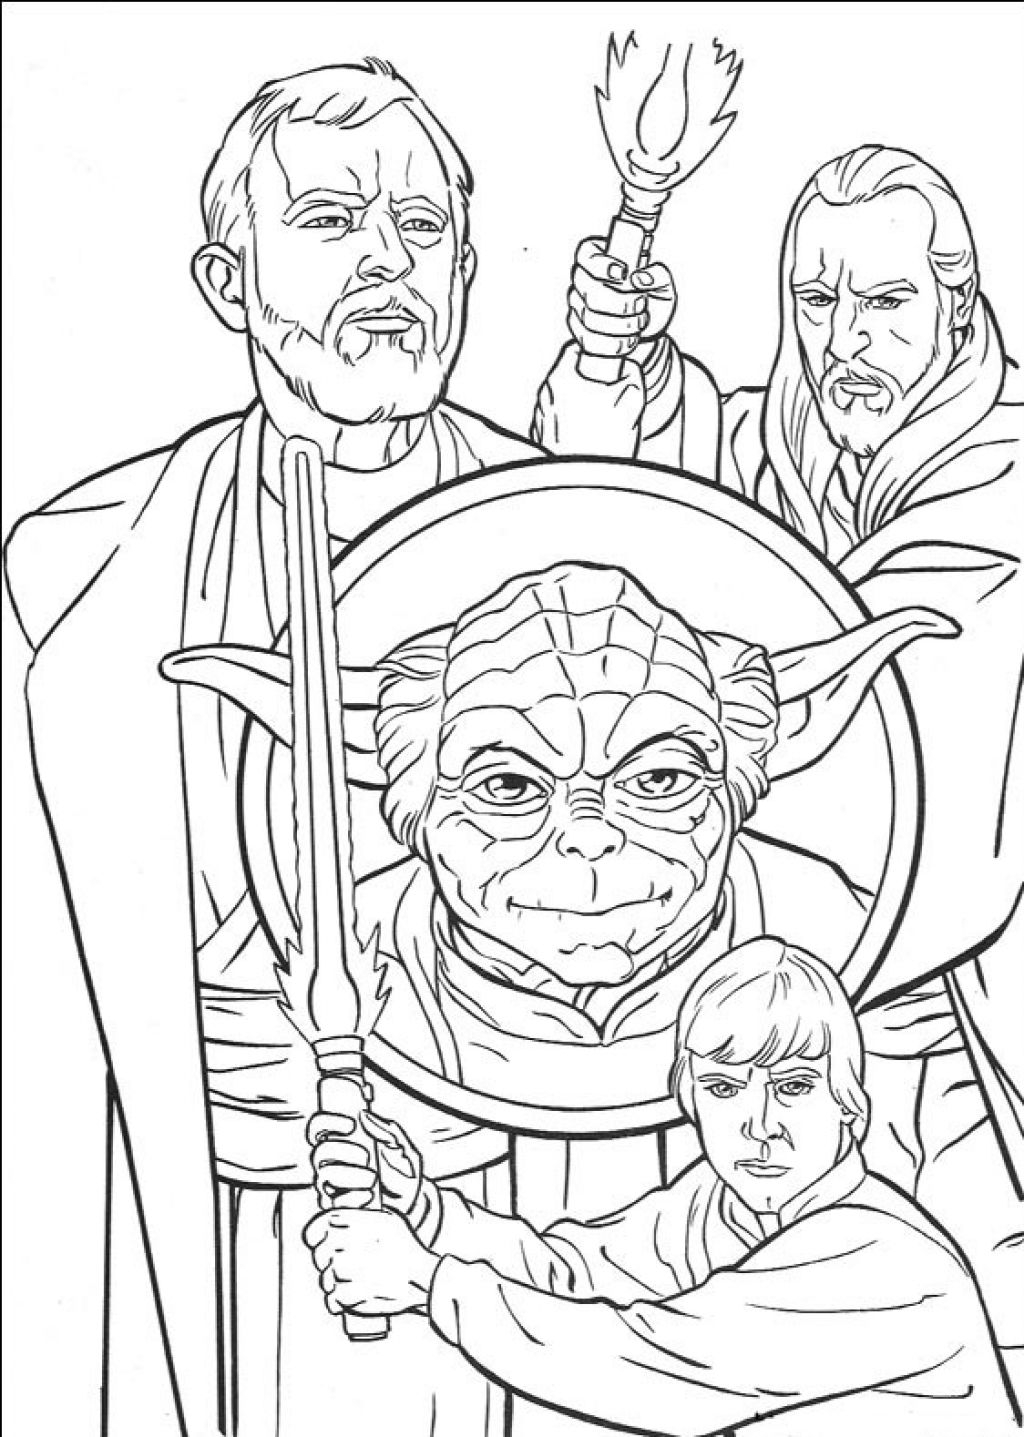 Free Coloring Pages Star Wars Characters Collection Of Polkadots On Parade Star Wars the force Awakens Coloring Pages Collection